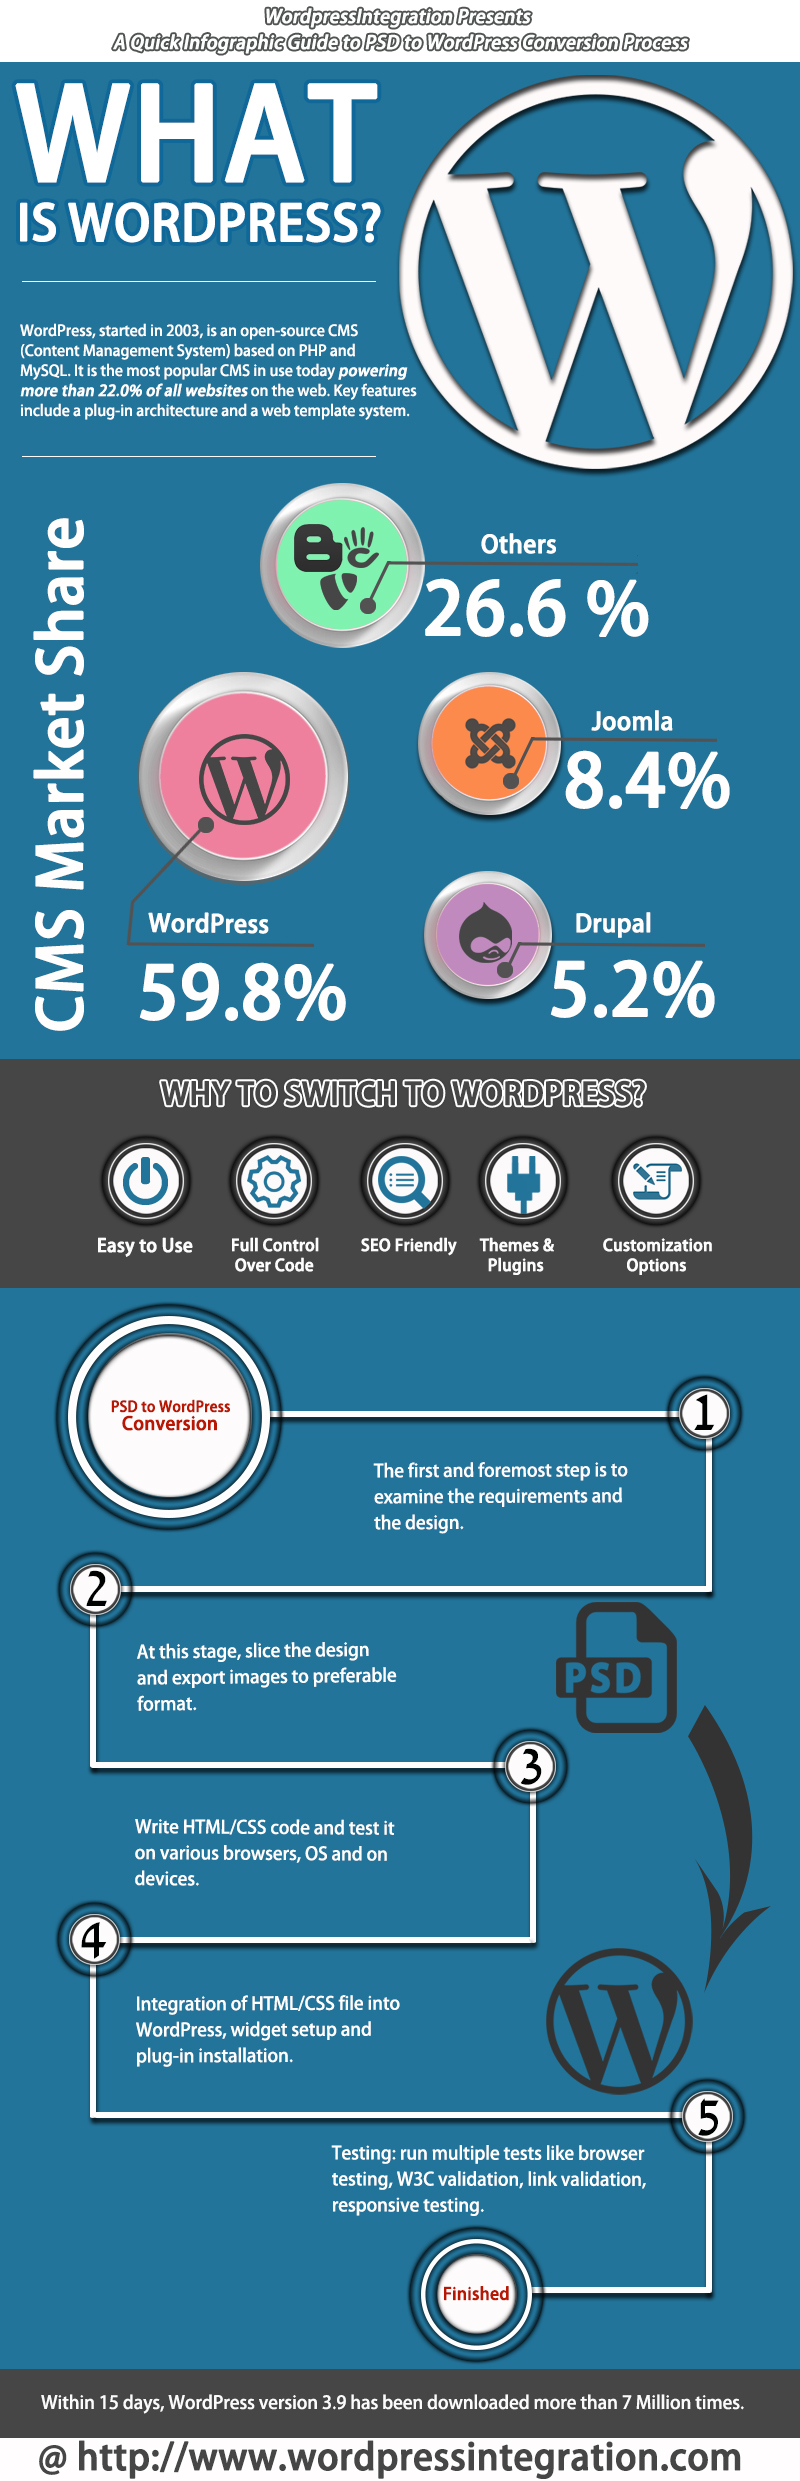 Photoshop to WordPress Conversion - infographic